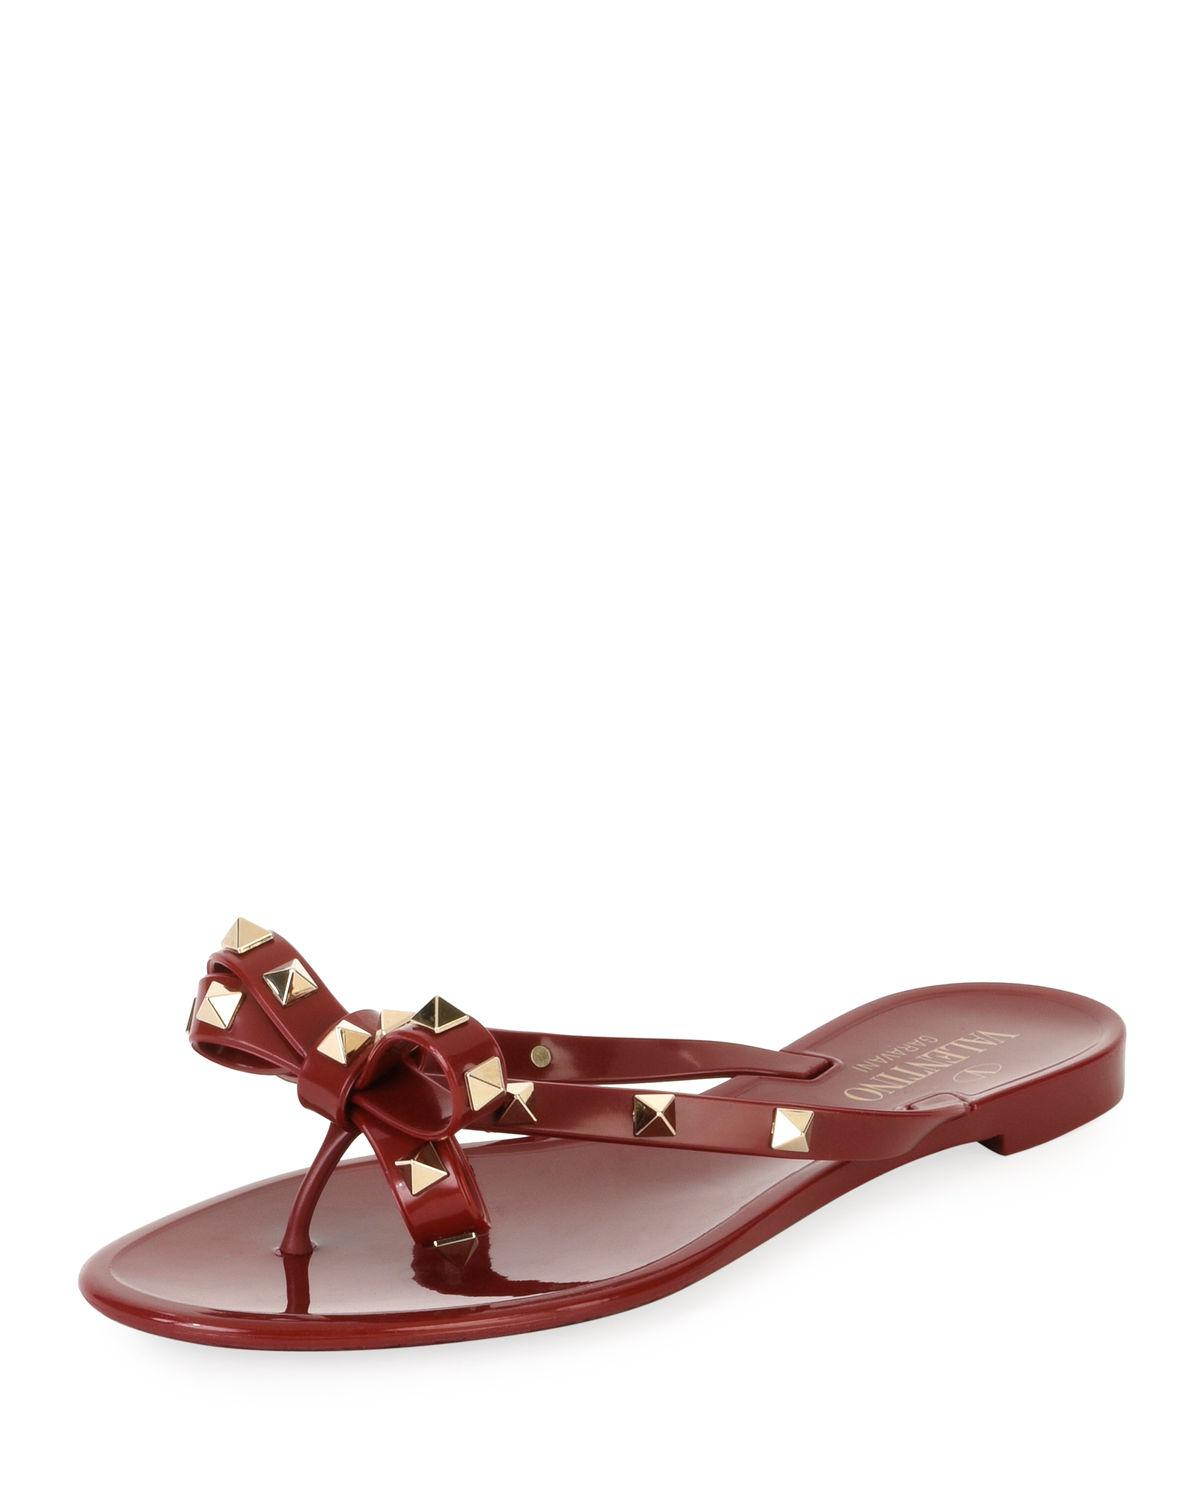 19547c224 Lyst - Valentino Jelly Rockstud Flat Thong Sandals in Red - Save 19%